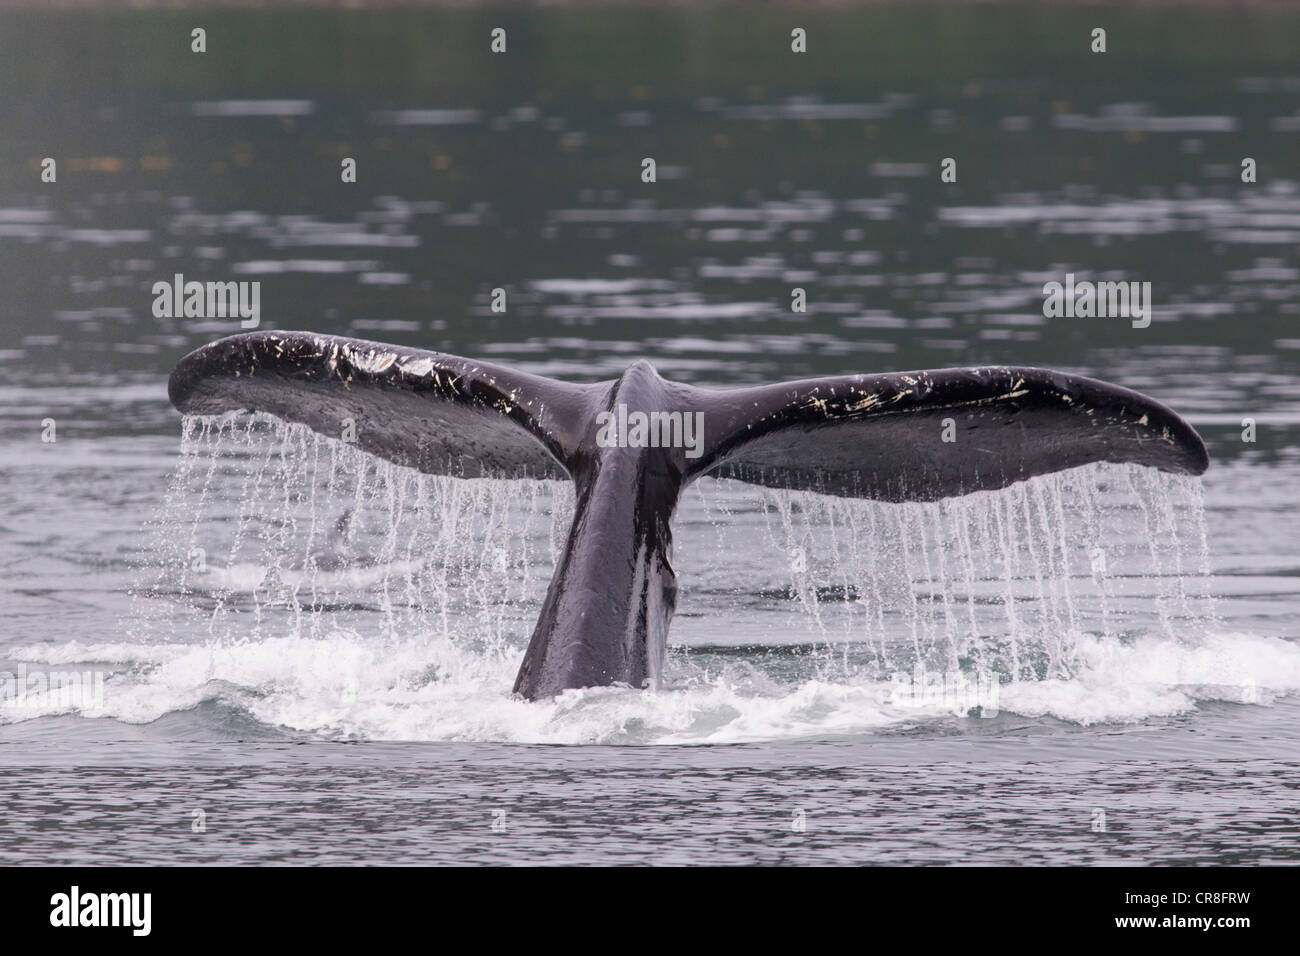 Tail of Humpback Whale - Stock Image